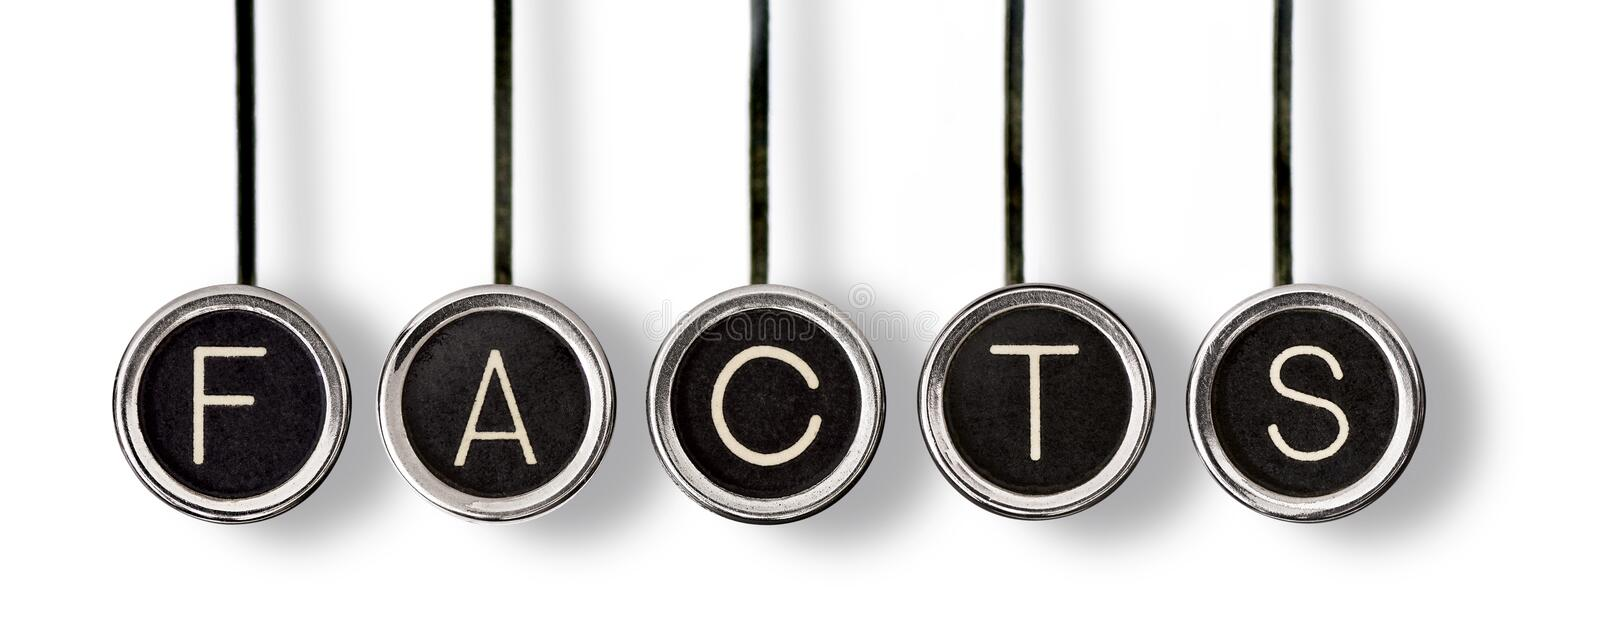 Old Facts royalty free stock image